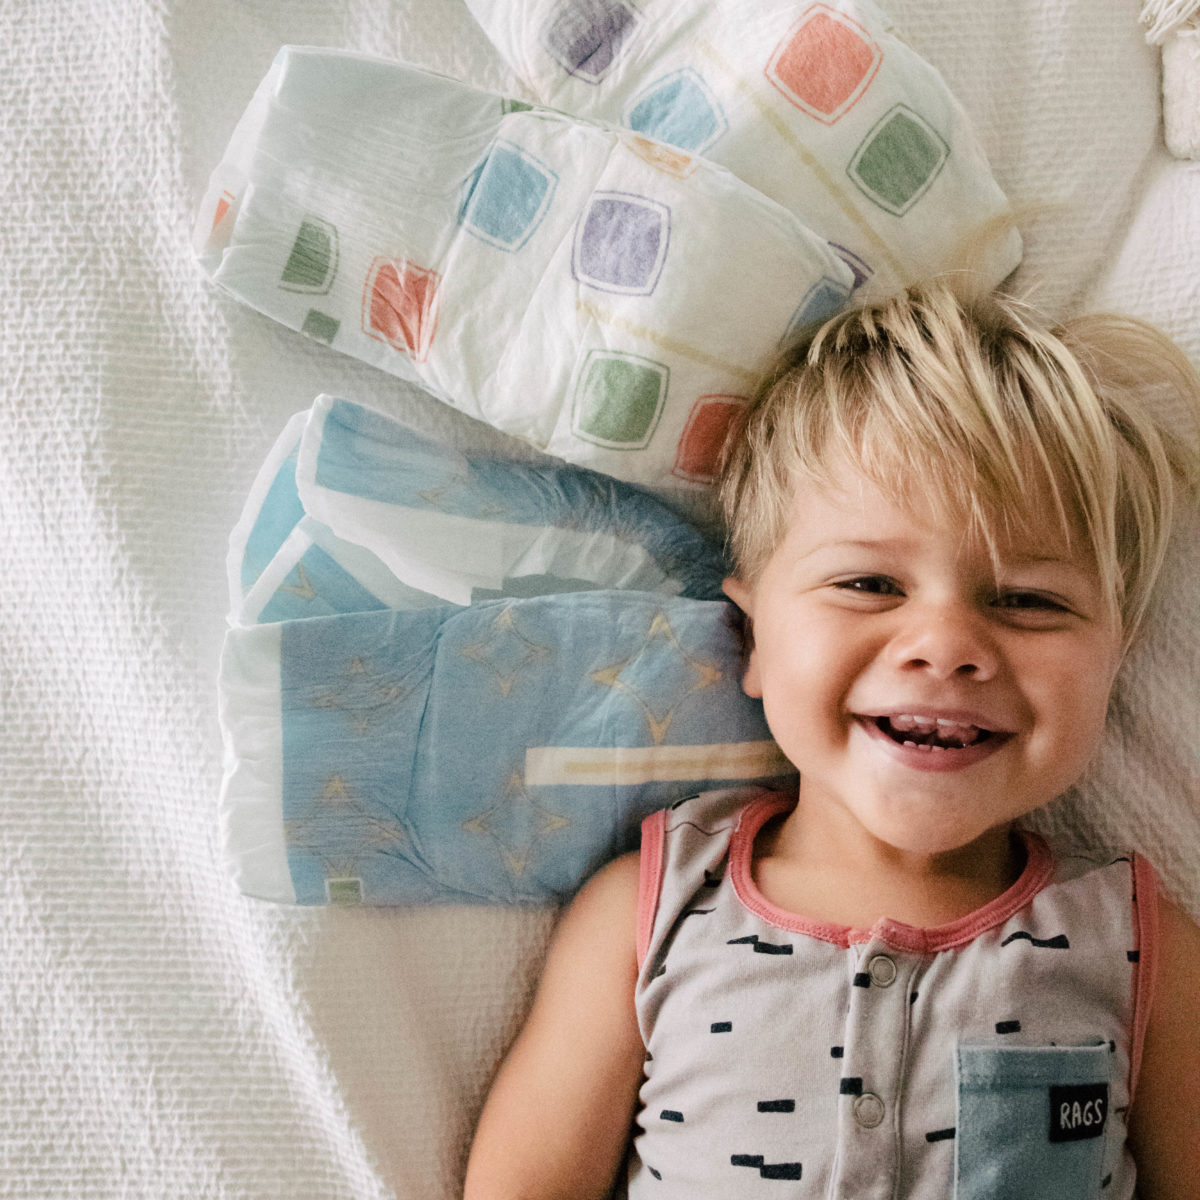 Toddlers Deserve comfortable diapers too